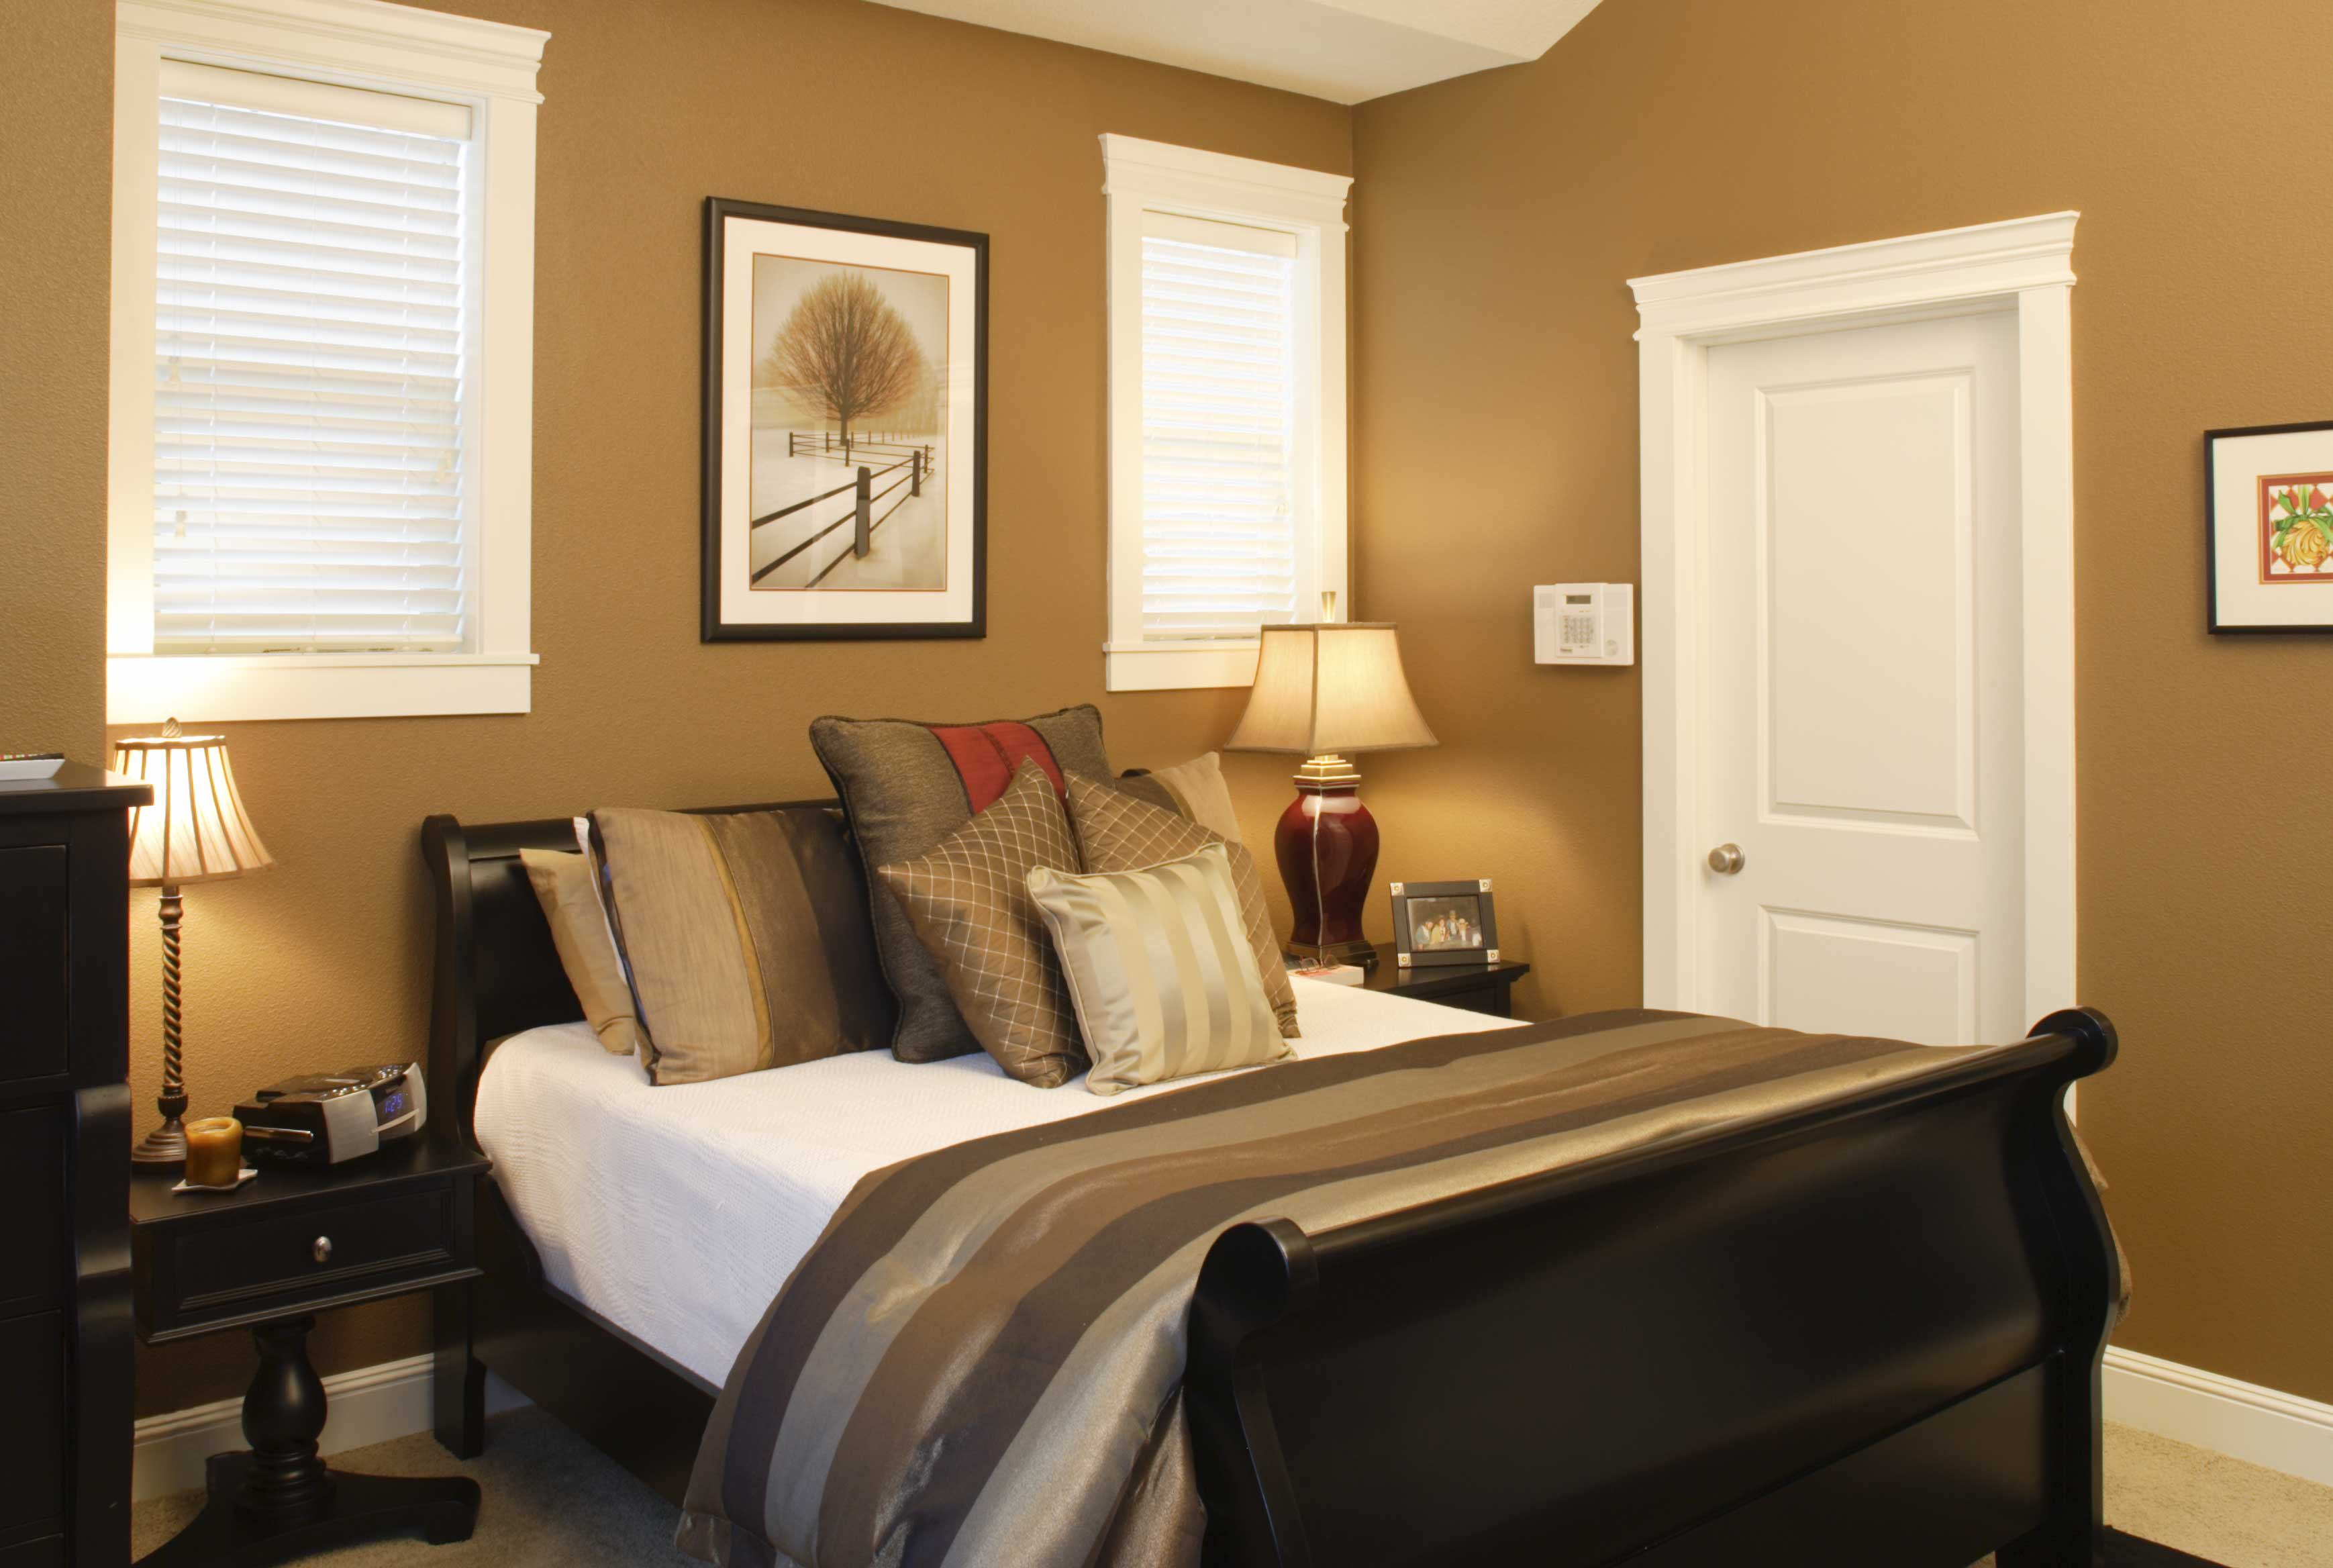 Decorate Traditional Room With Beige Bedroom Color Ideas And Dark Wooden  Bed Near Oak Nightstands.